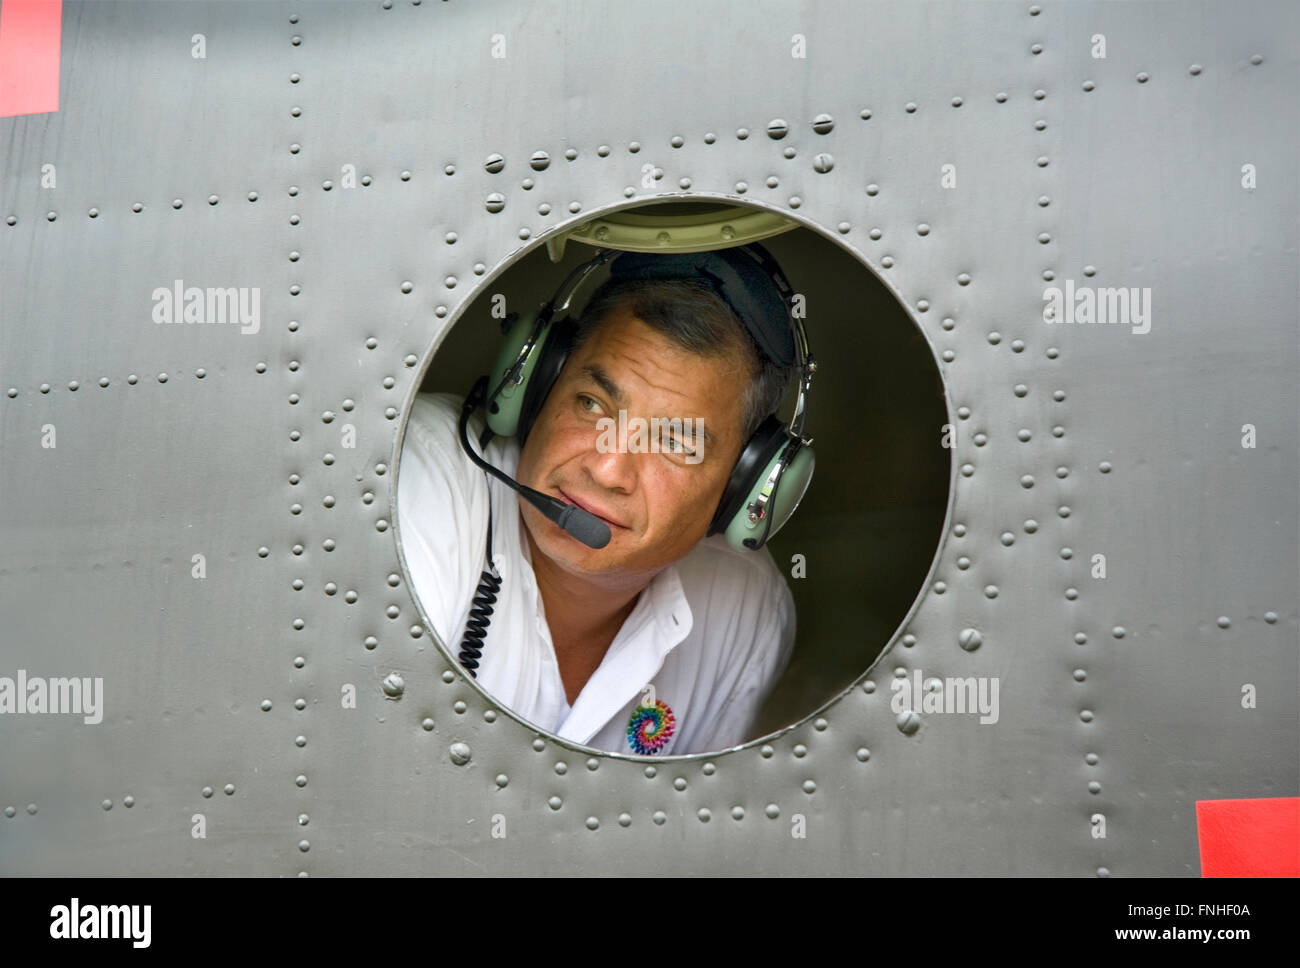 President Correa looks out the window of his helicopter during filming of travel documentary Ecuador: The Royal - Stock Image